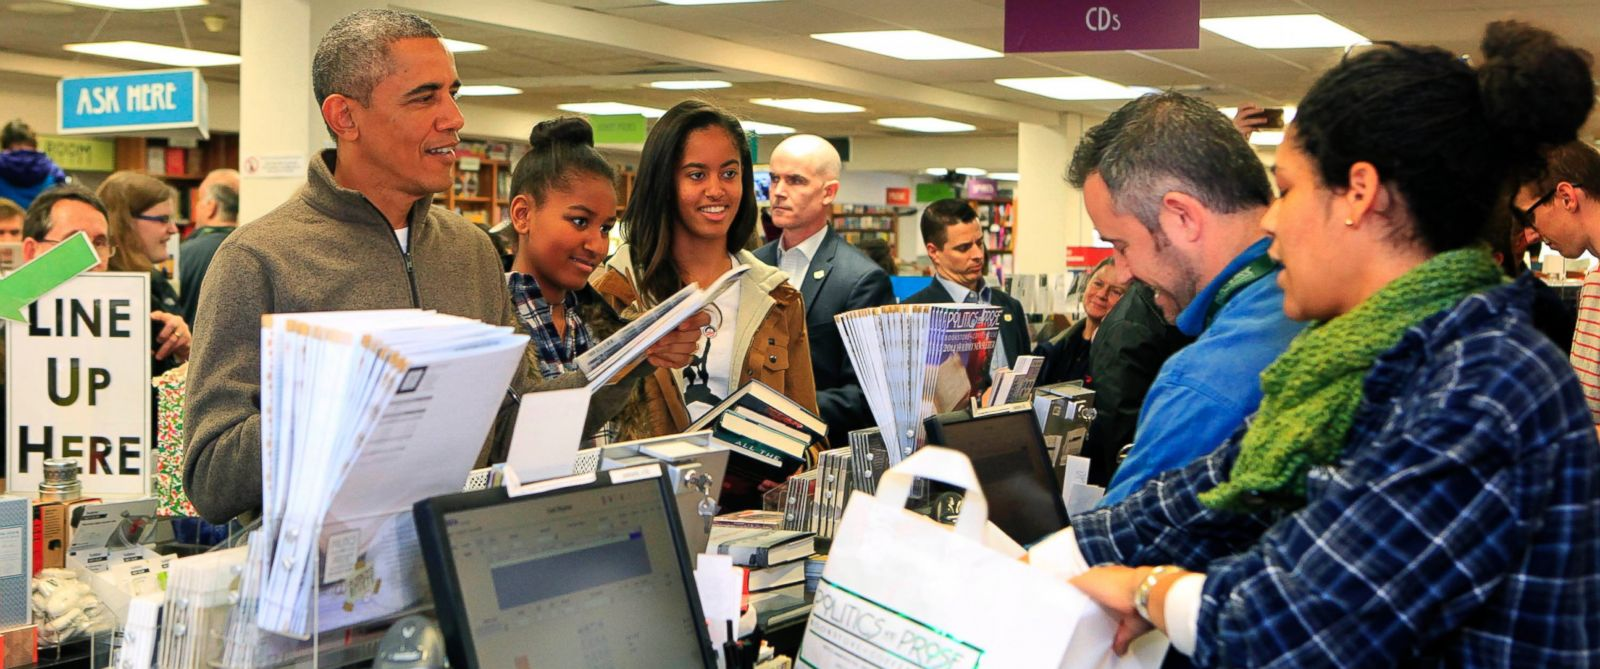 PHOTO: Barack Obama, left, and daughters Sasha, center, and Malia, right, purchase books at the bookstore Politics and Prose in Washington, D.C. on Nov. 29, 2014.